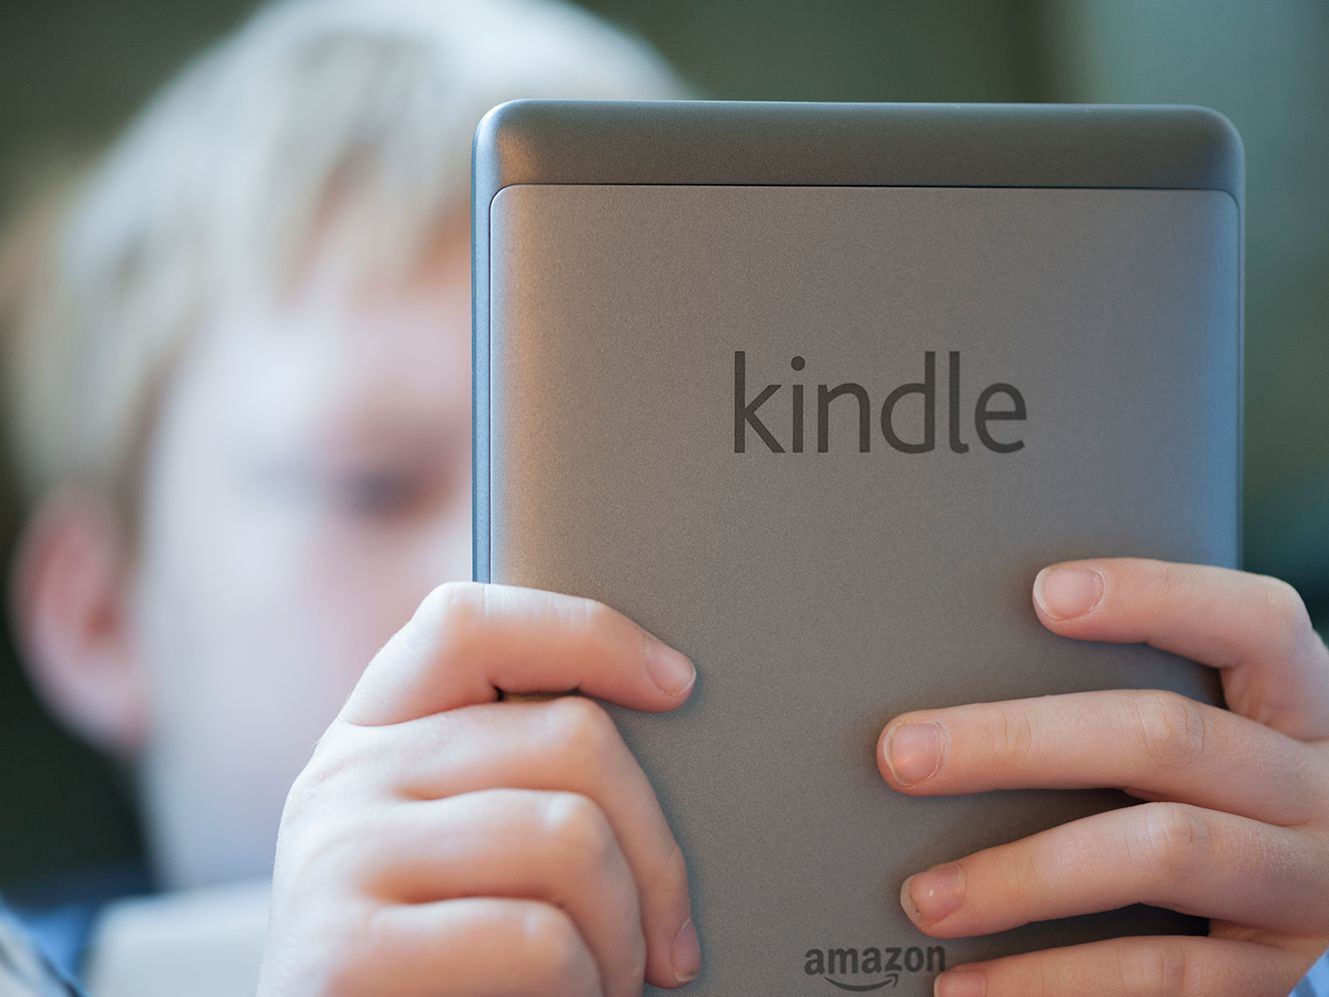 How to Use Kindle's Free 3G/4G for Email